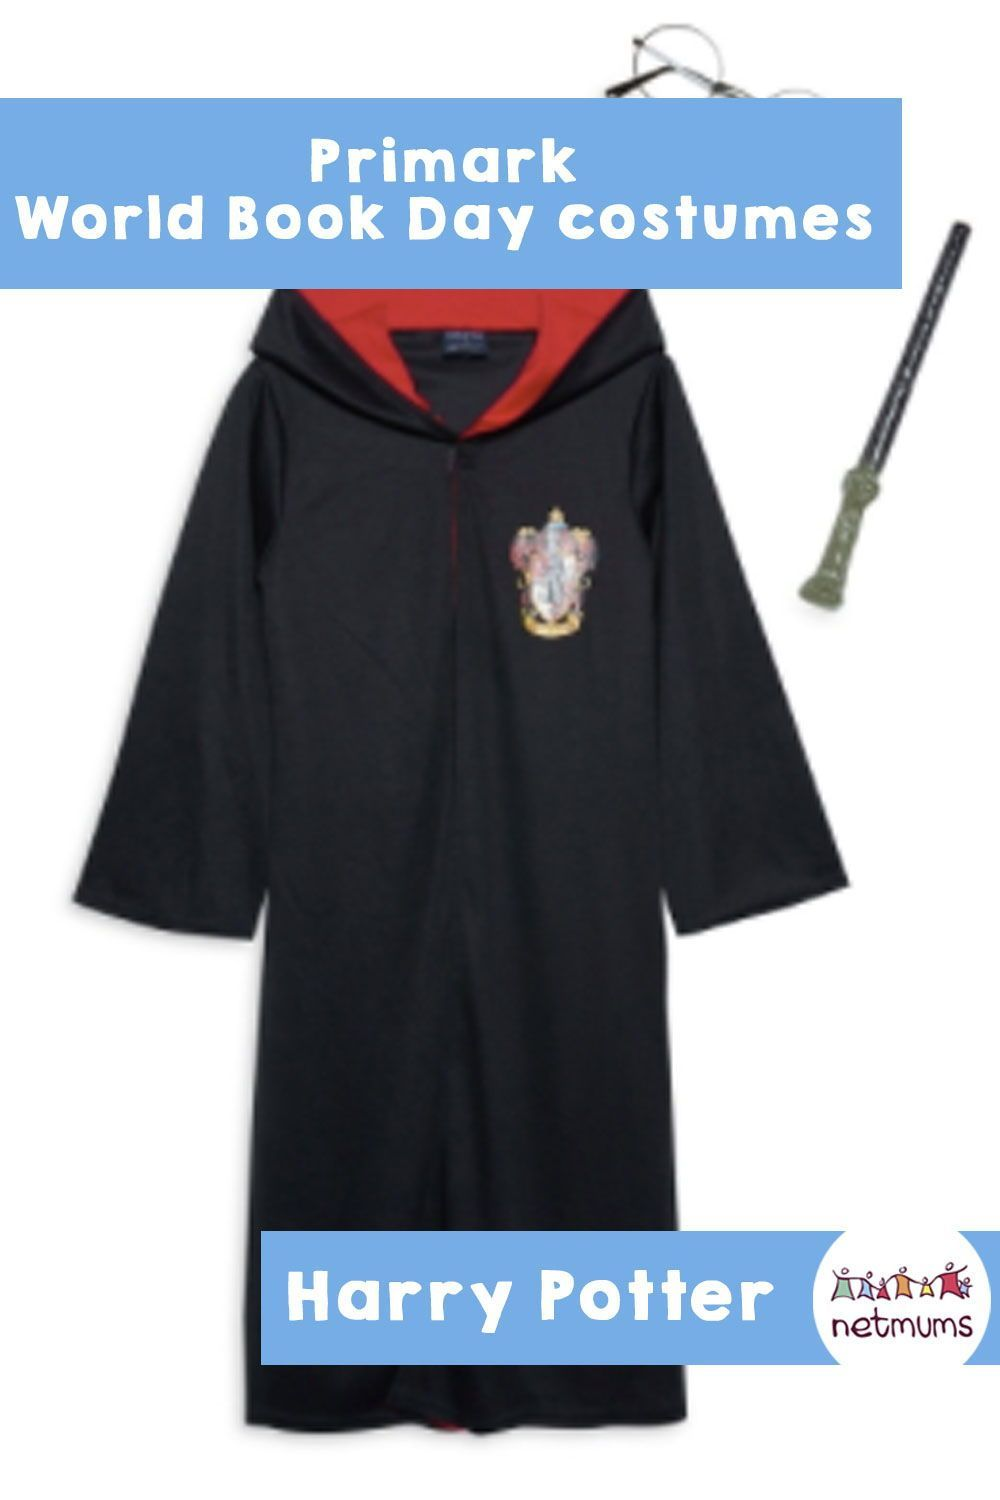 Primark World Book Day Costumes Harry Potter With World Book Day Just Around The Corner 1 Ma Book Day Costumes World Book Day Costumes Harry Potter Costume